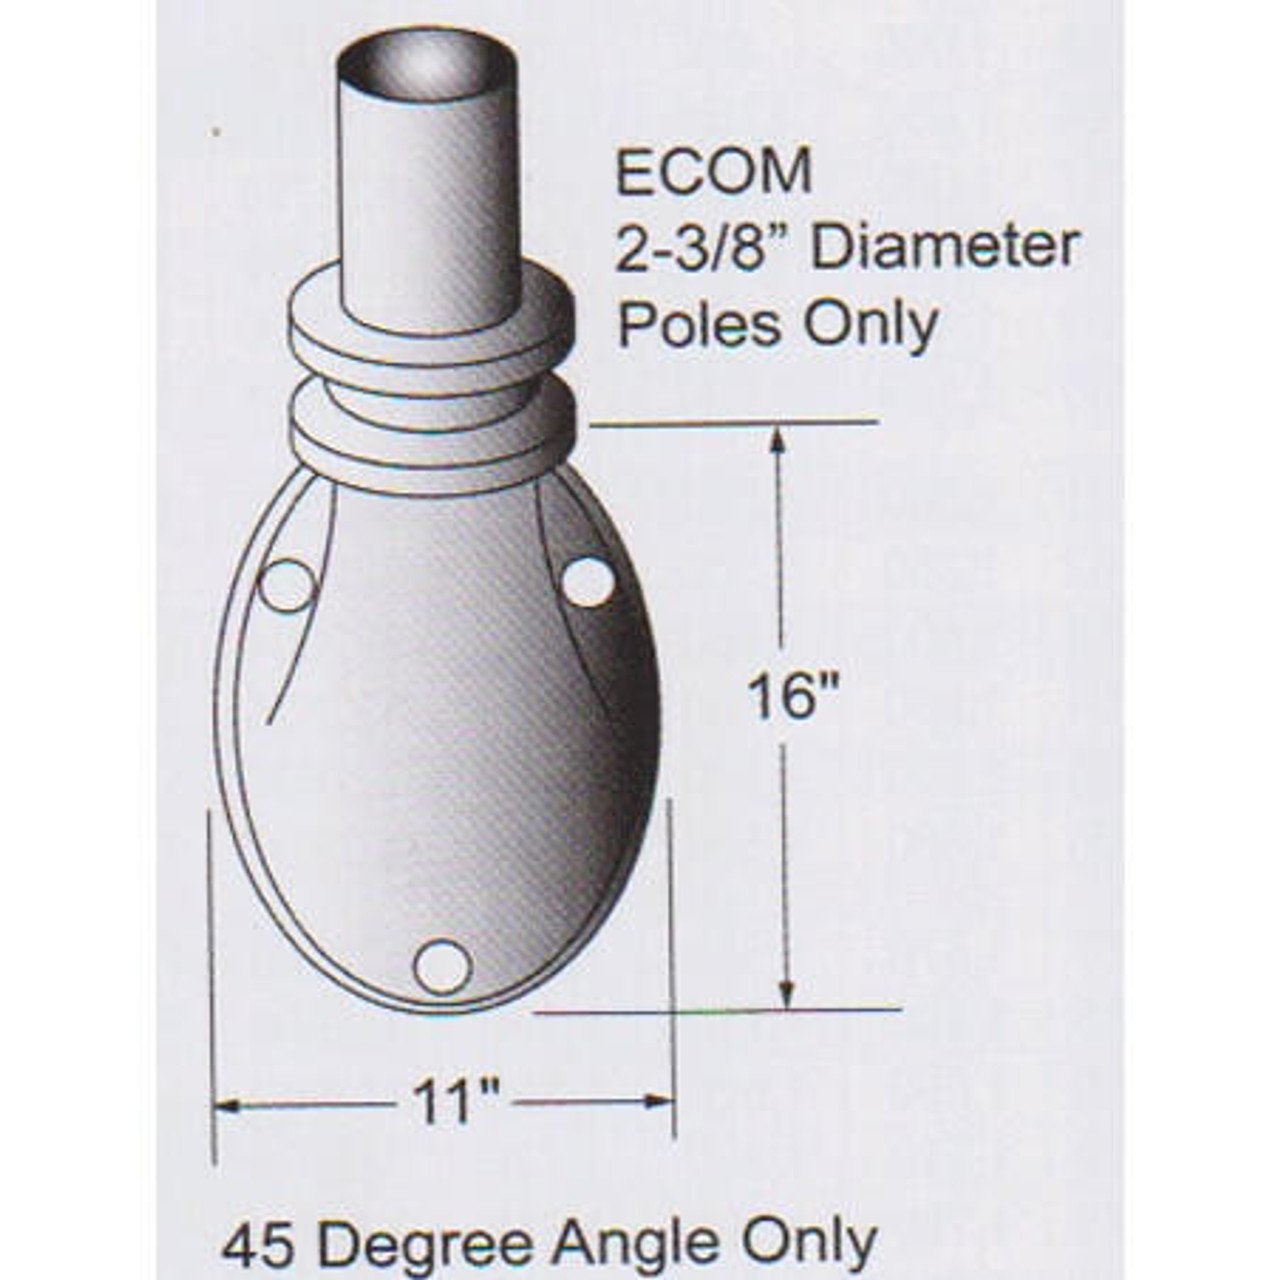 10 Tapered Flagpole ECOM10 wall mount